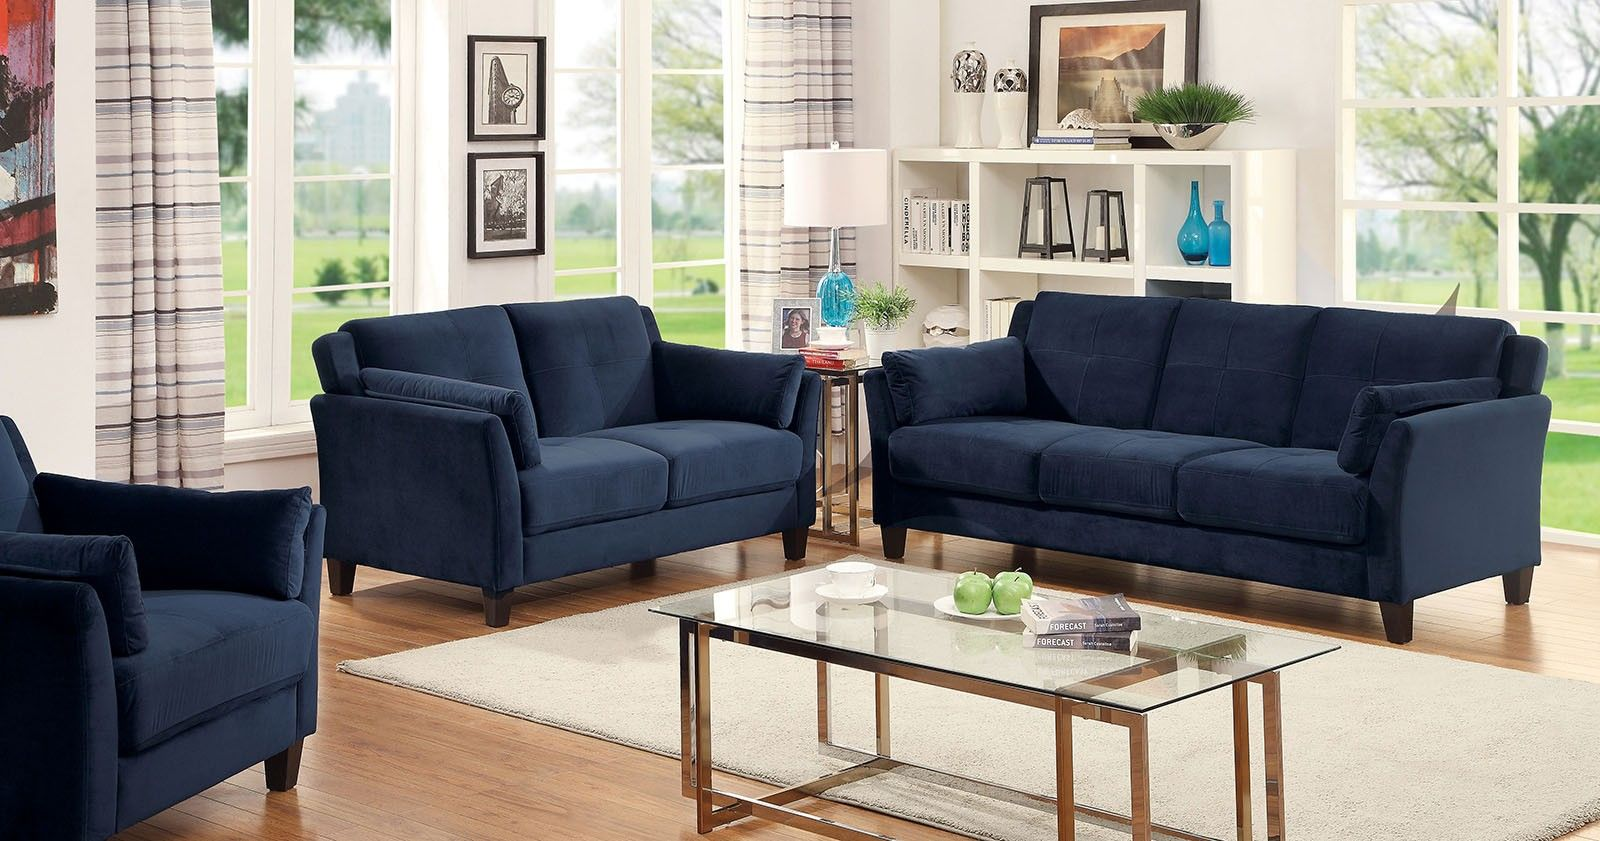 awesome couch and sofa set collection-Best Of Couch and sofa Set Image